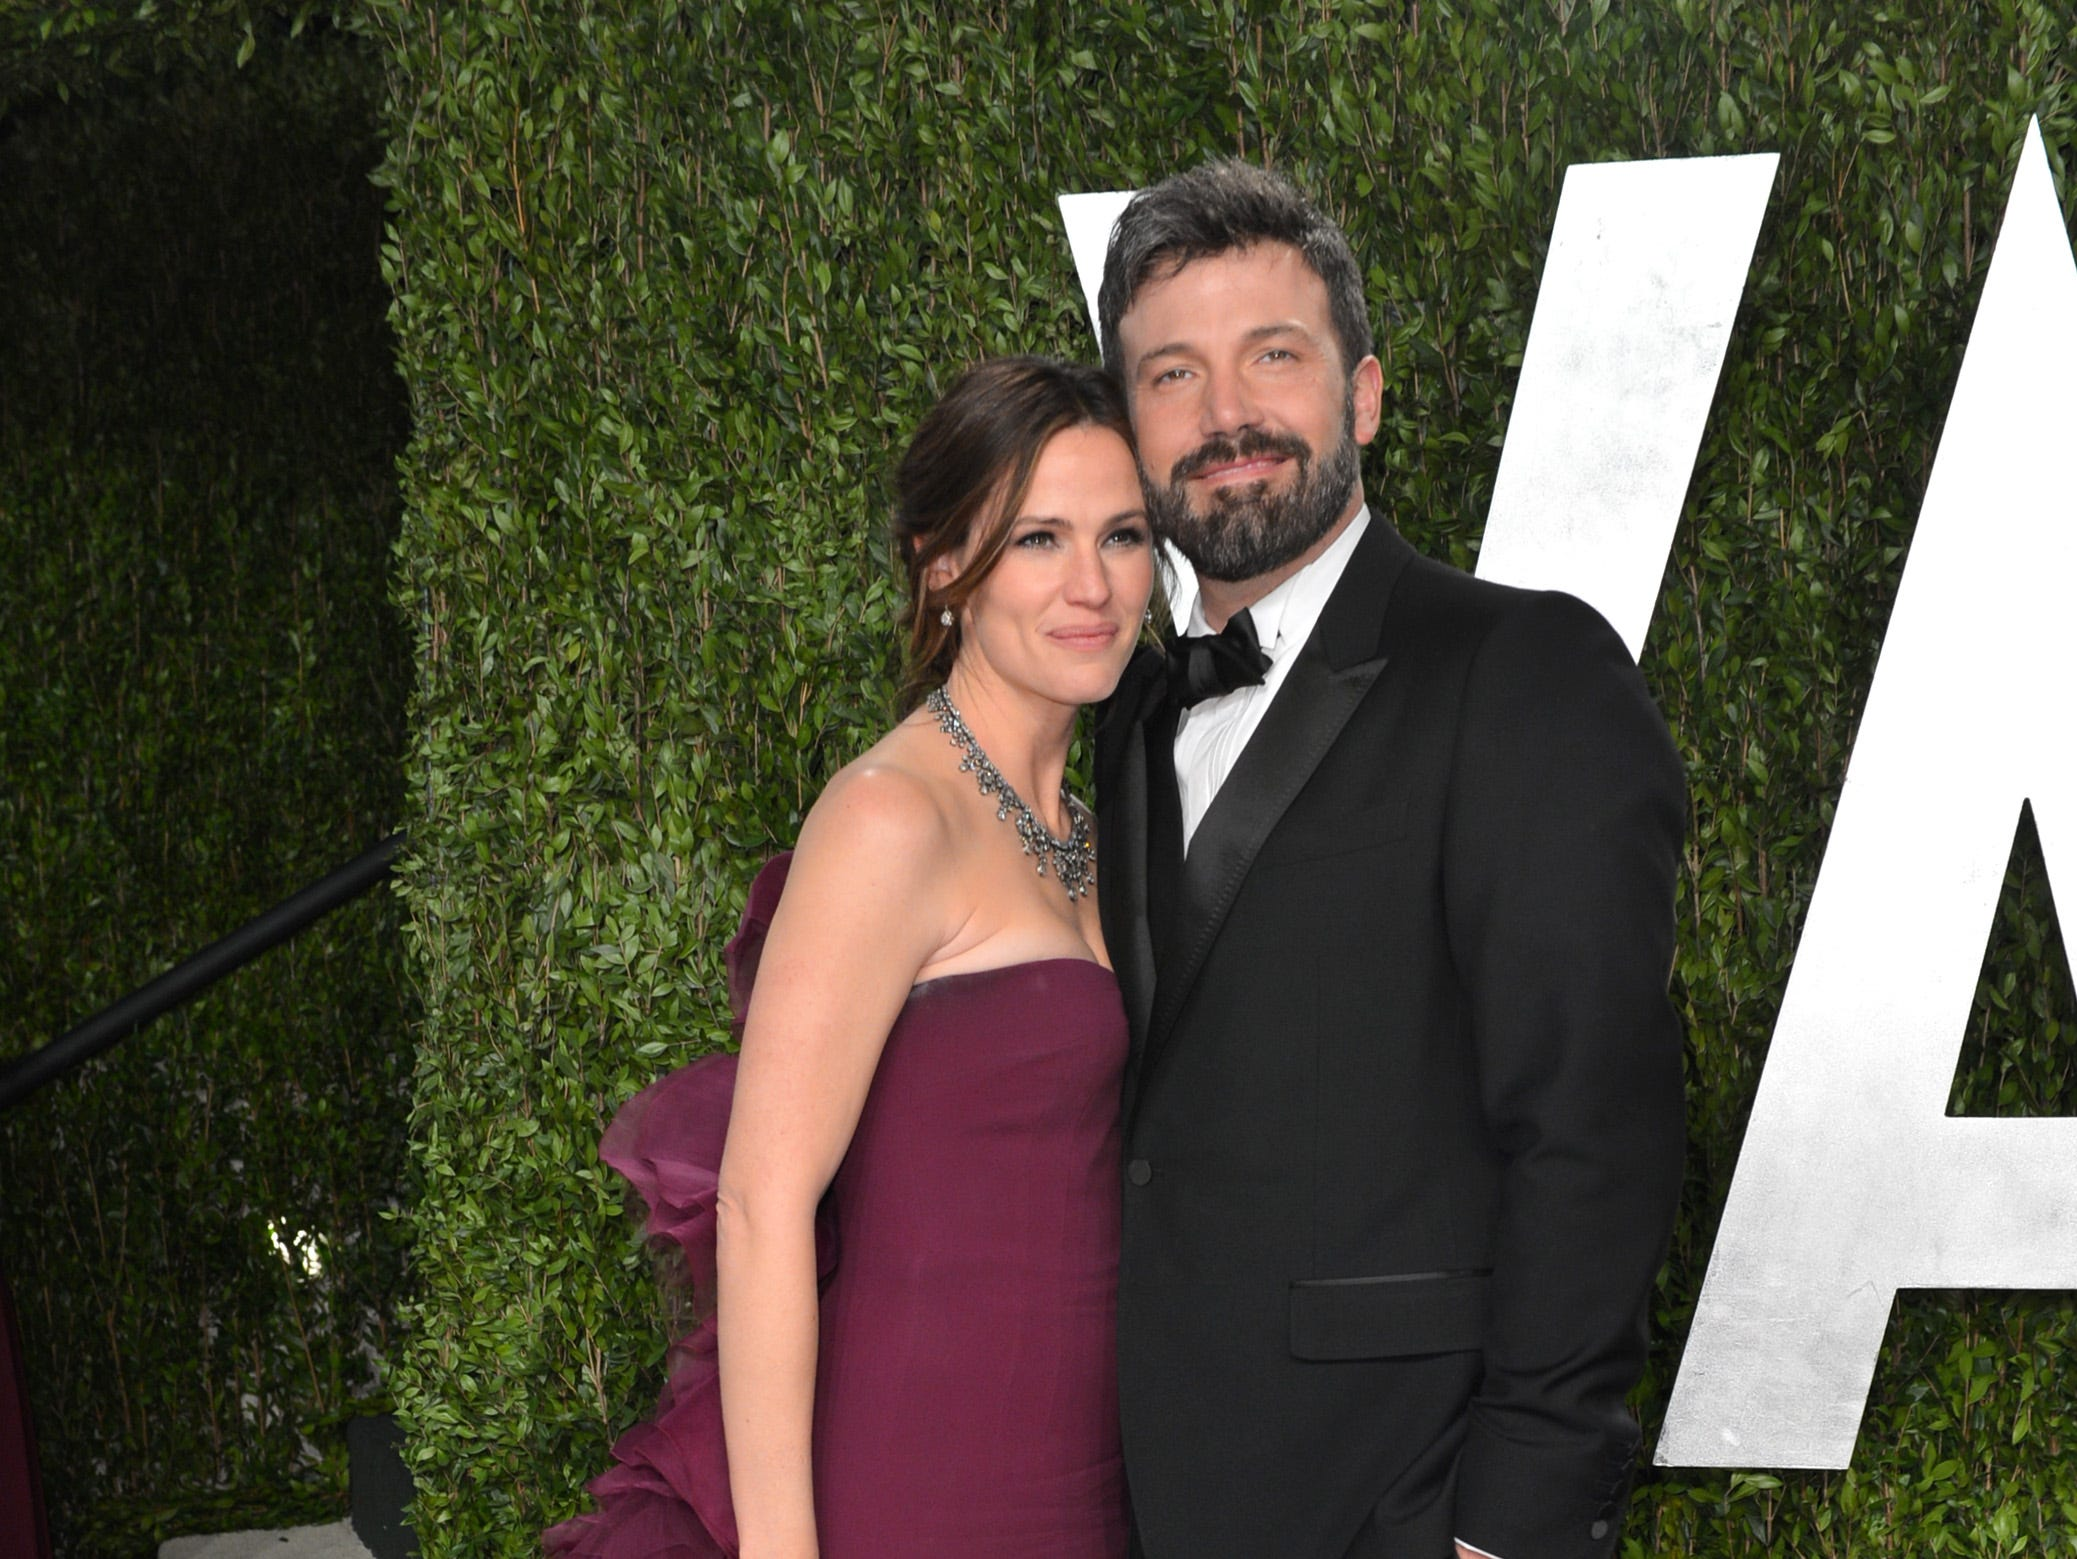 FILE - APRIL 13, 2017: Ben Affleck and Jennifer Garner officially filed for divorce on Thursday in the Los Angeles Superior Court citing irreconcilable differences. The couple announced their separation in June 2015, after 10 years of marriage. WEST HOLLYWOOD, CA - FEBRUARY 24:  Actor Jennifer Garner and director Ben Affleck arrive at the 2013 Vanity Fair Oscar Party hosted by Graydon Carter at Sunset Tower on February 24, 2013 in West Hollywood, California.  (Photo by Alberto E. Rodriguez/WireImage) ORG XMIT: 690205223 ORIG FILE ID: 162620709